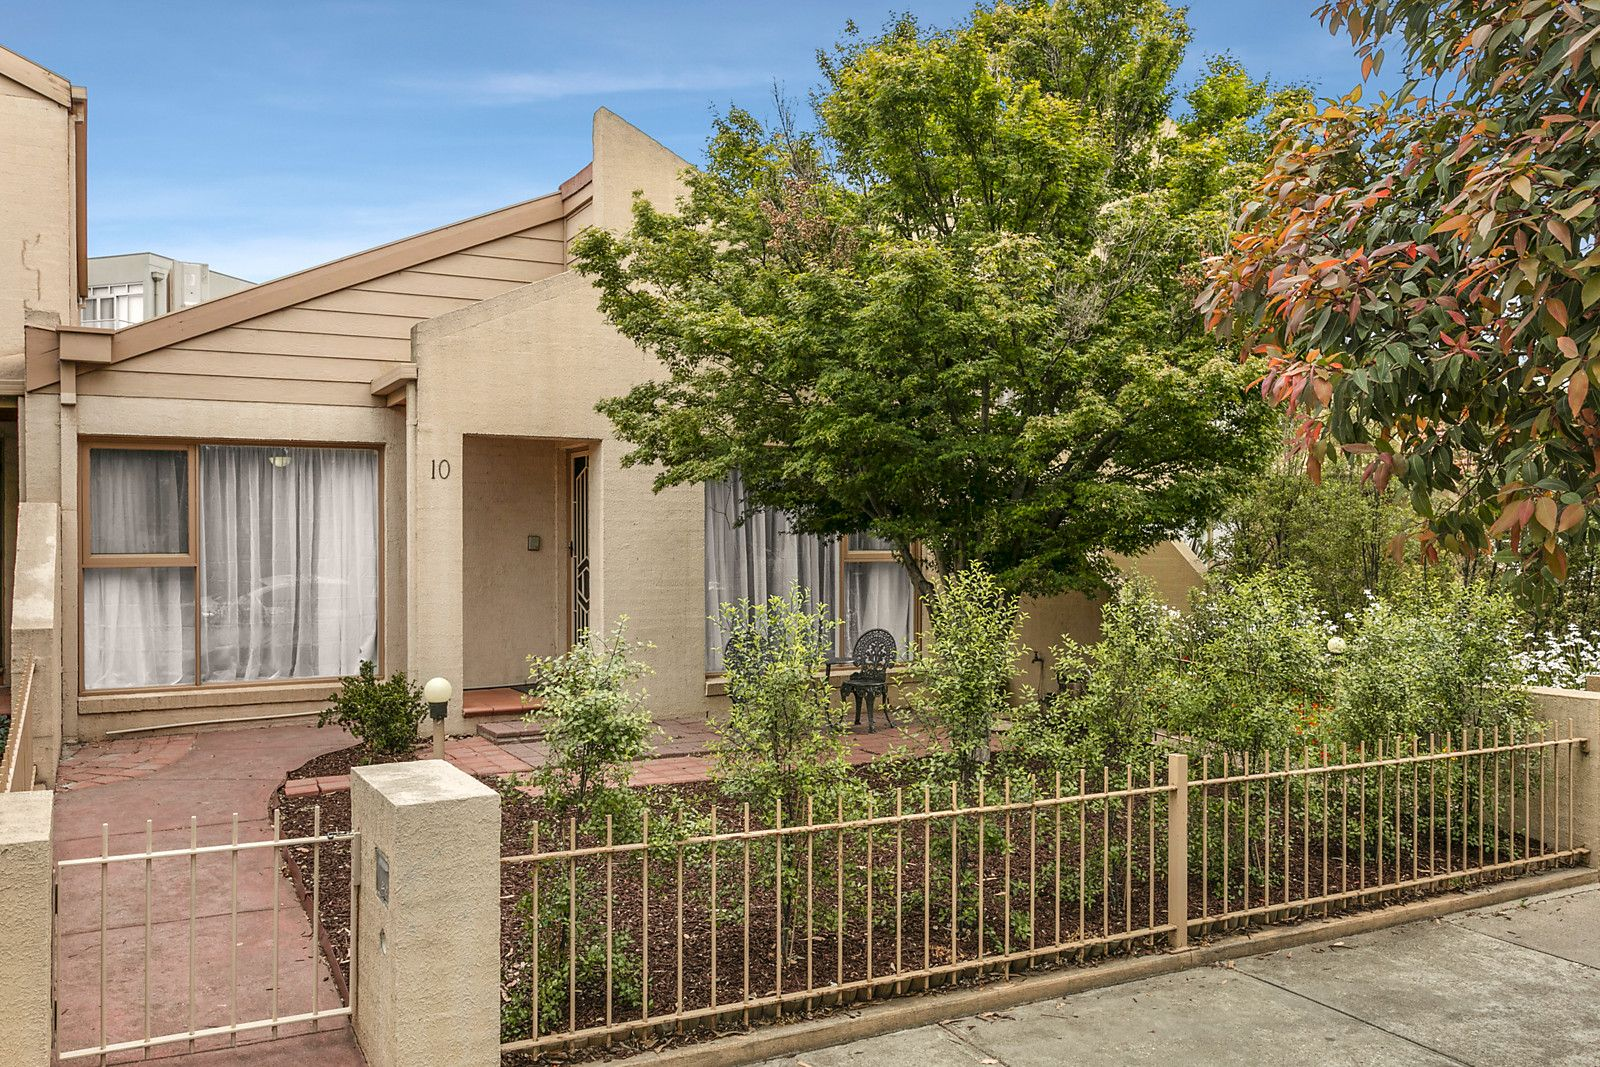 10/57 Ascot Street, Ascot Vale VIC 3032, Image 0